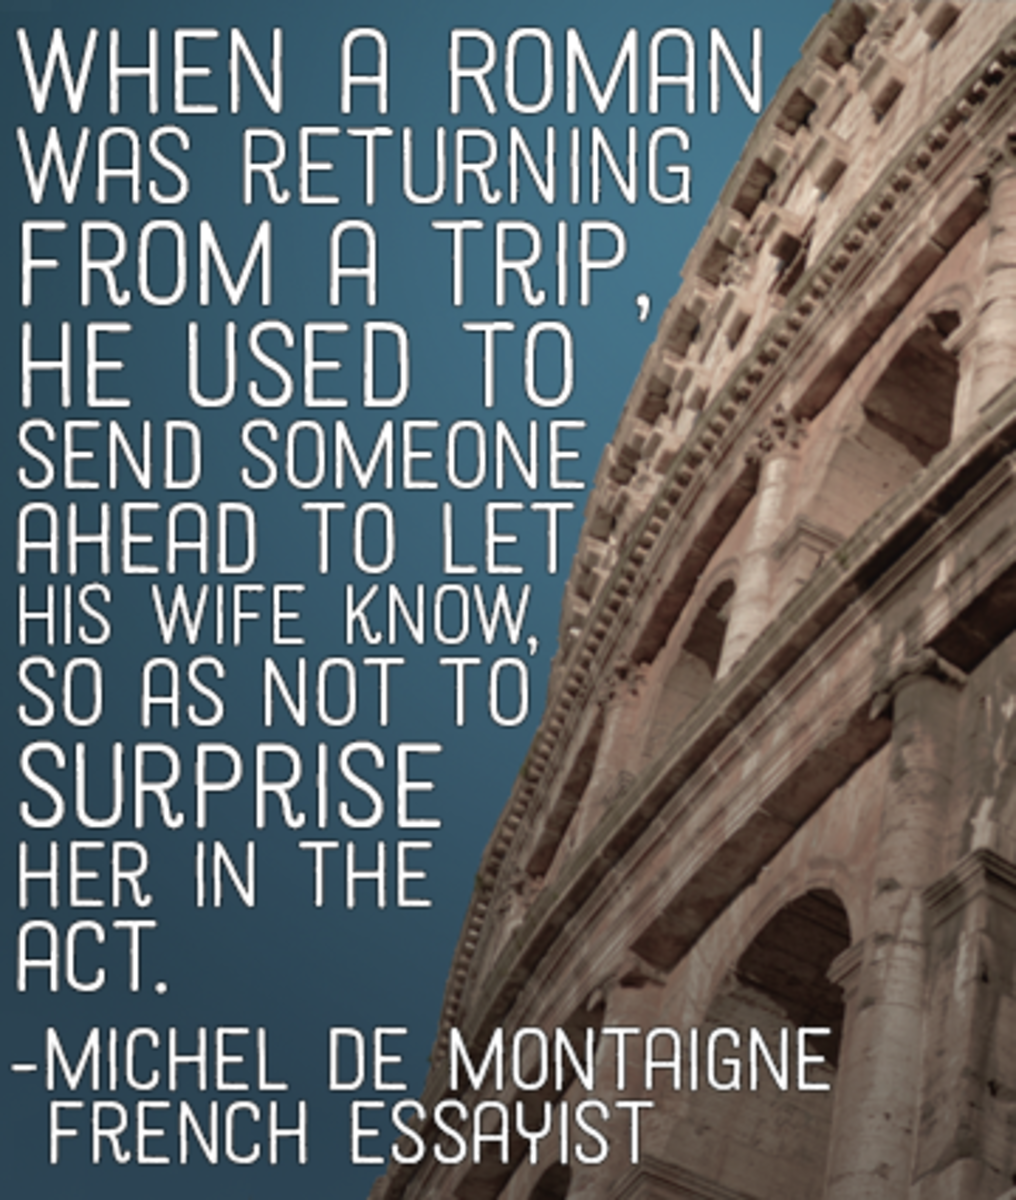 """When a Roman was returning from a trip, he used to send someone ahead to let his wife know, so as not to surprise her in the act."" —Michel de Montaigne, French essayist"